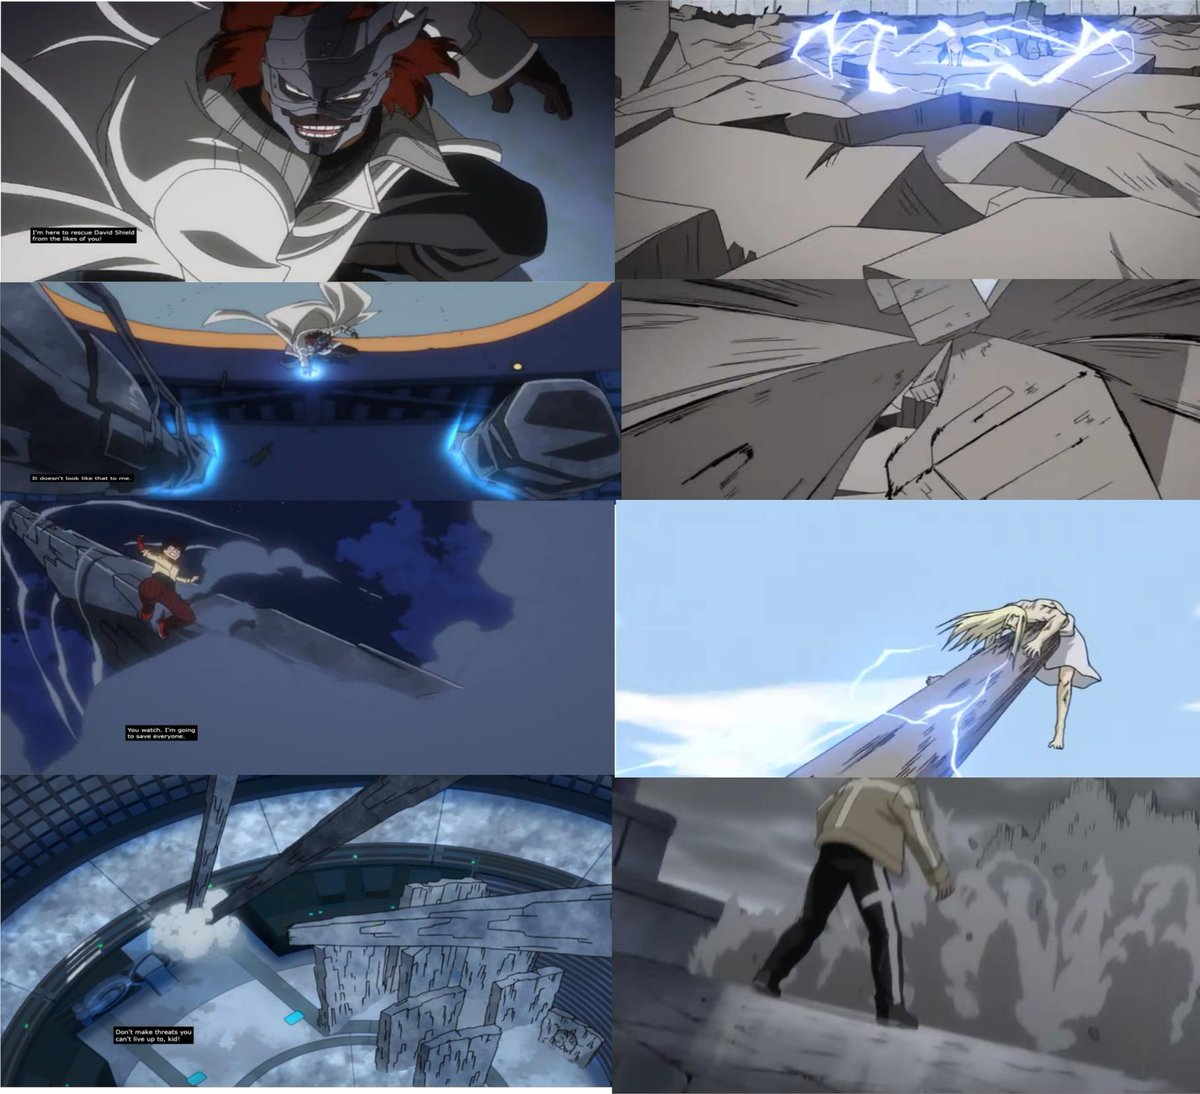 Castle23clash On Twitter So I Watched My Hero Academia S Two Heroes Movie Was Surprised To See Similarities Between The Villain Wolfram And Edward Elrich S Fighting Styles Fma Mha Bokunoheroacademia Anime Fullmetalalchemist 鋼の錬金術師